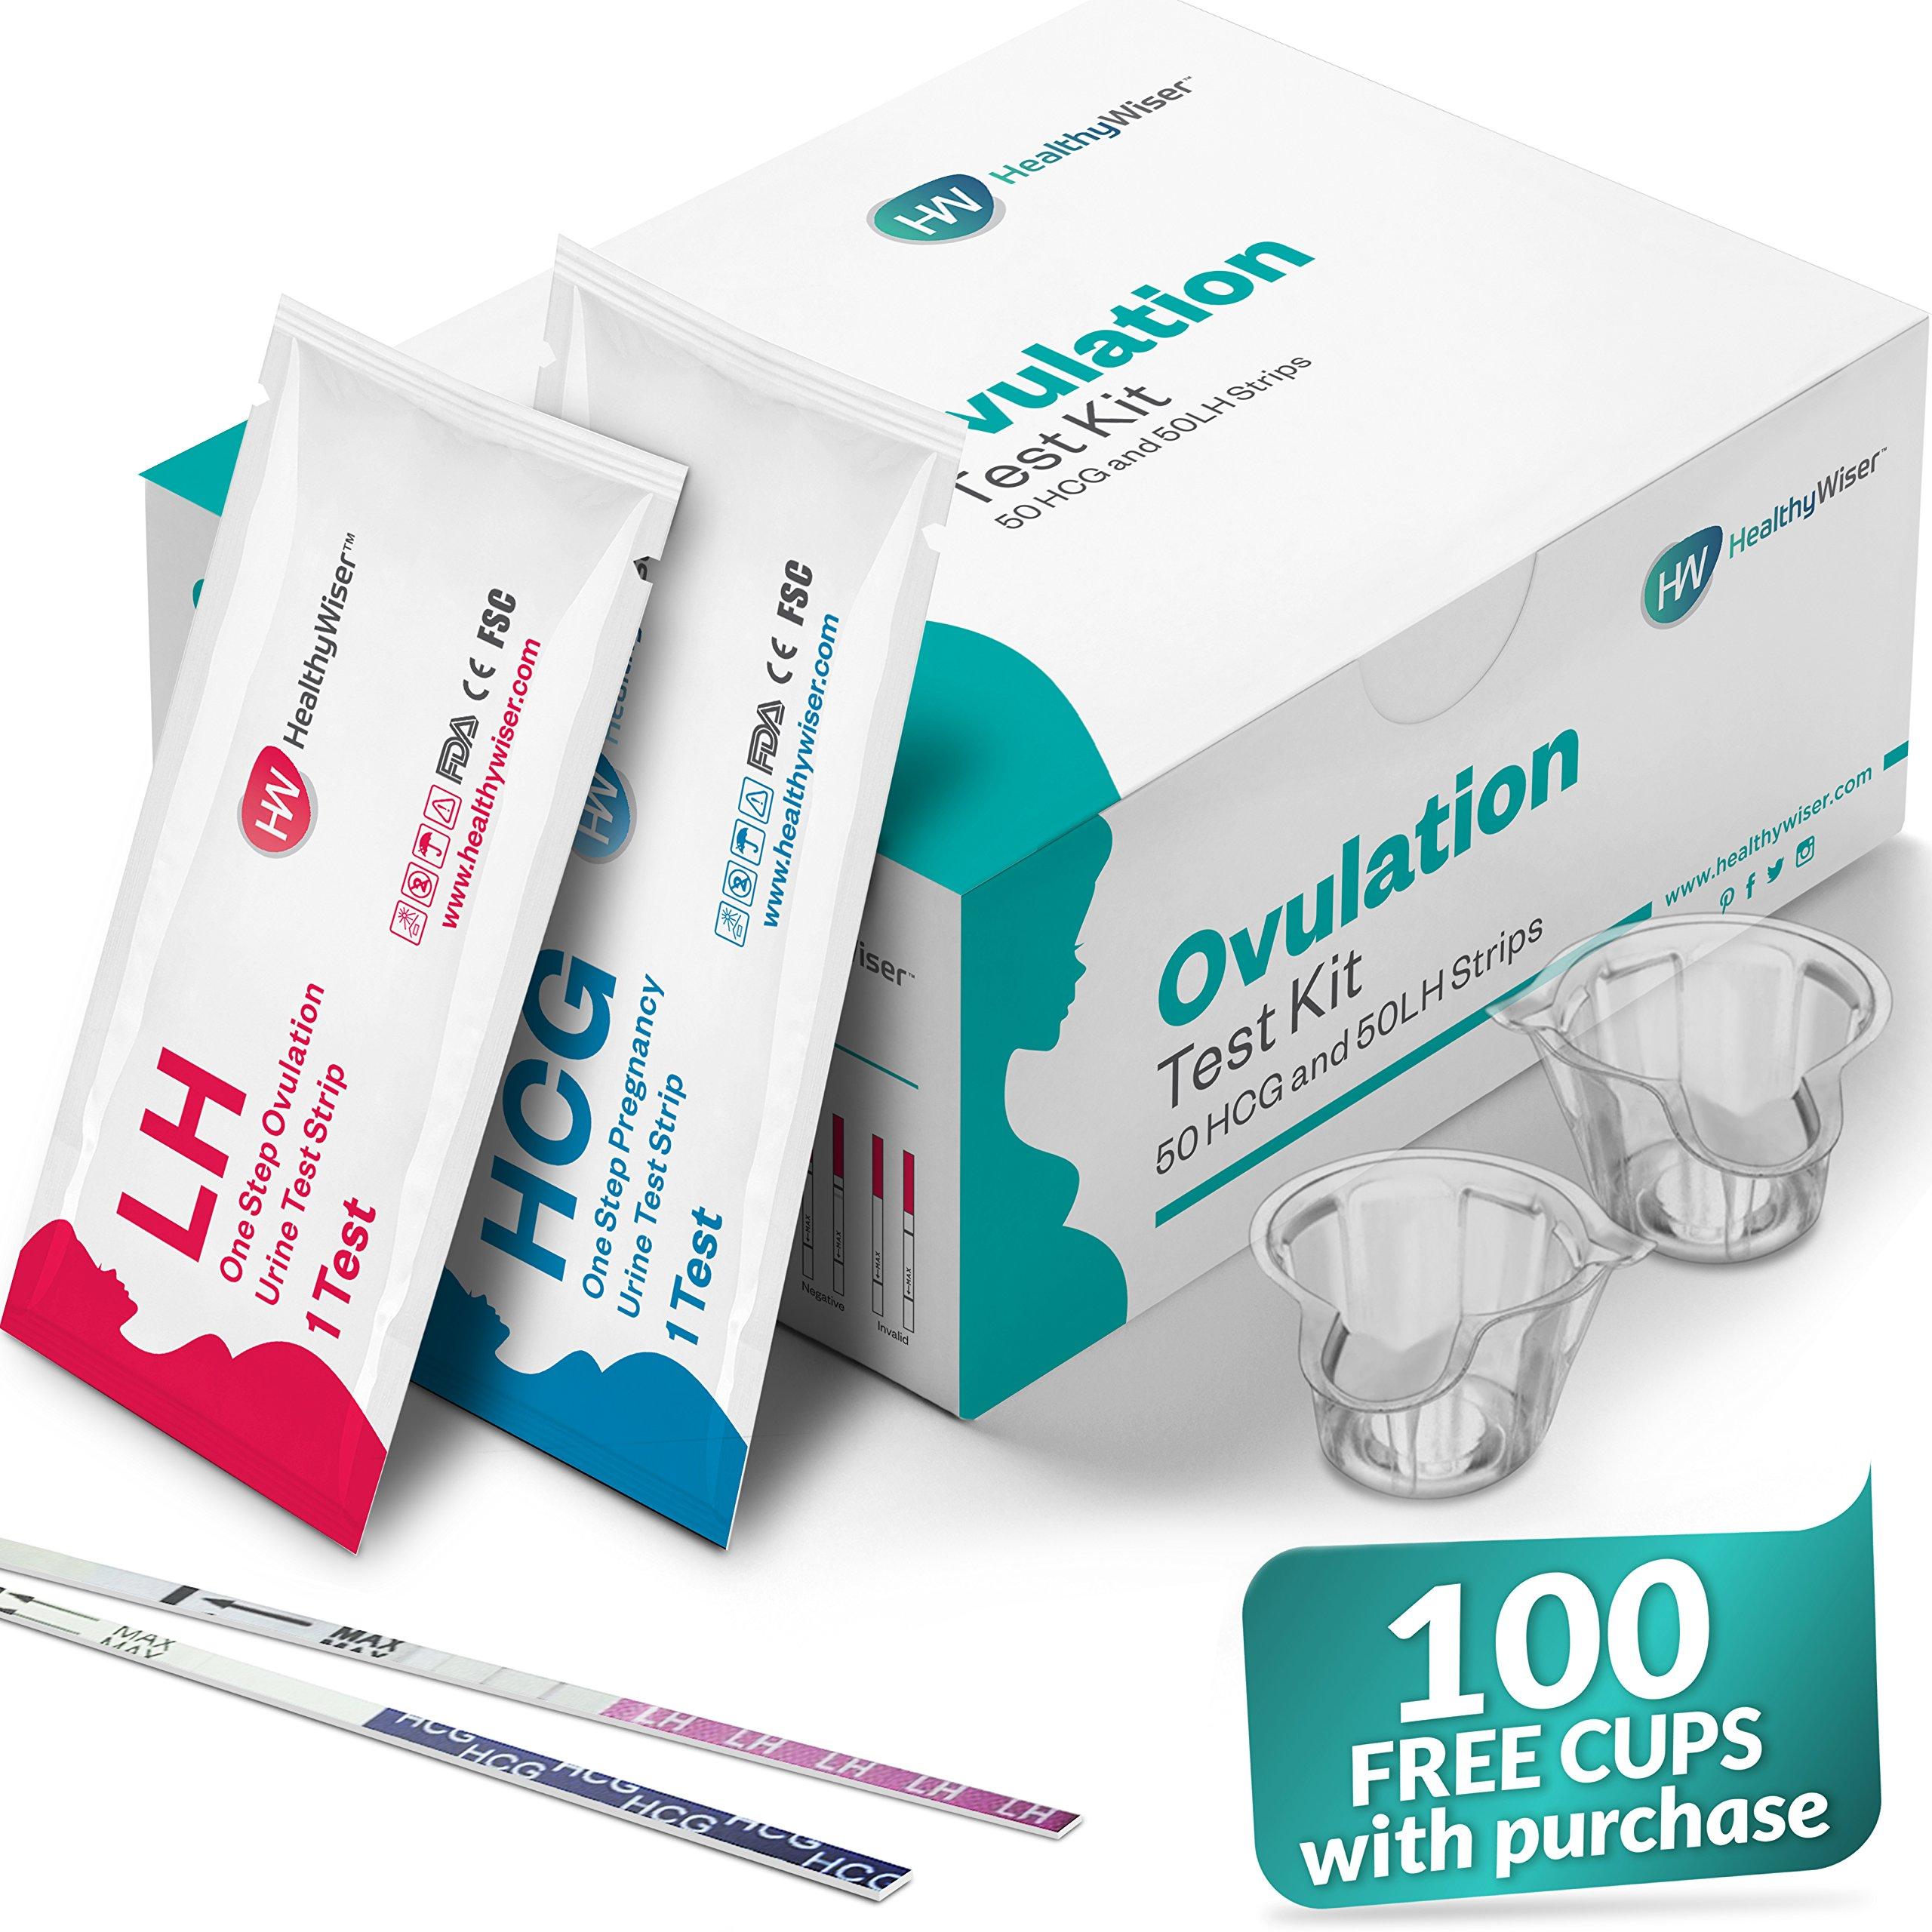 Pregnancy Test Kit, 50 Ovulation and 50 Pregnancy Test Strips, Monitor & Track Fertility, Predictor Kit, Clear & Accurate Results, LH & HCG Urine Strips, Gifts For Your Fertile Days, Ovulation Tracker by HealthyWiser